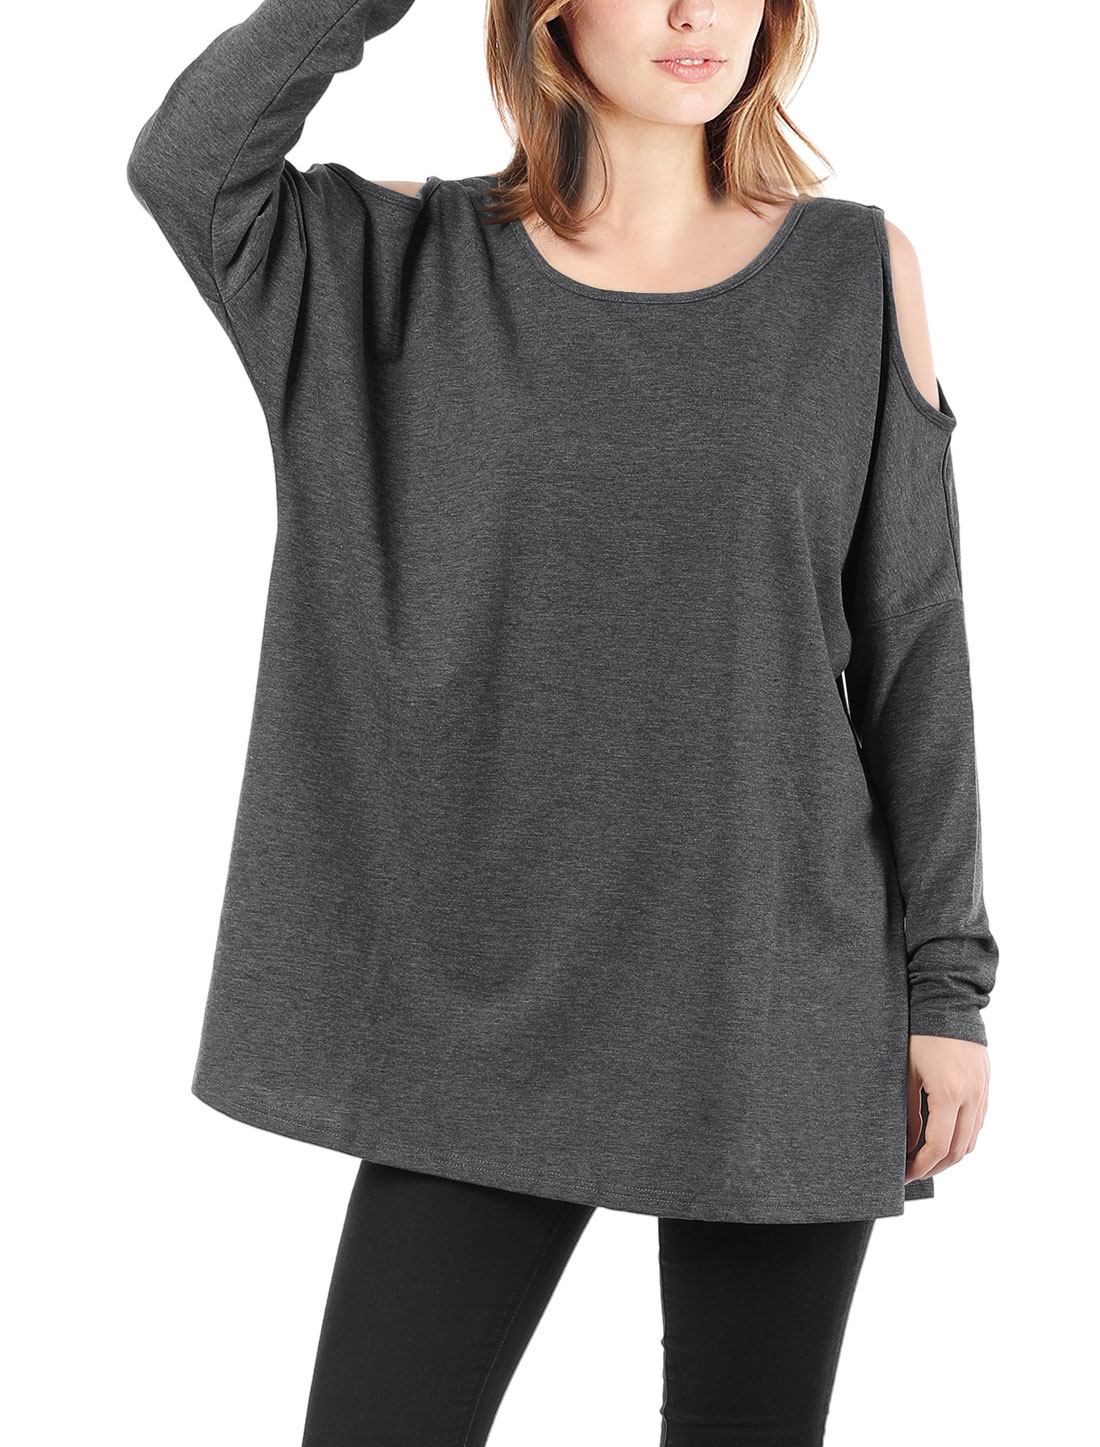 Ladies Scoop Neck Cut Out Shoulder Oversized Tunic Top Dark Gray S